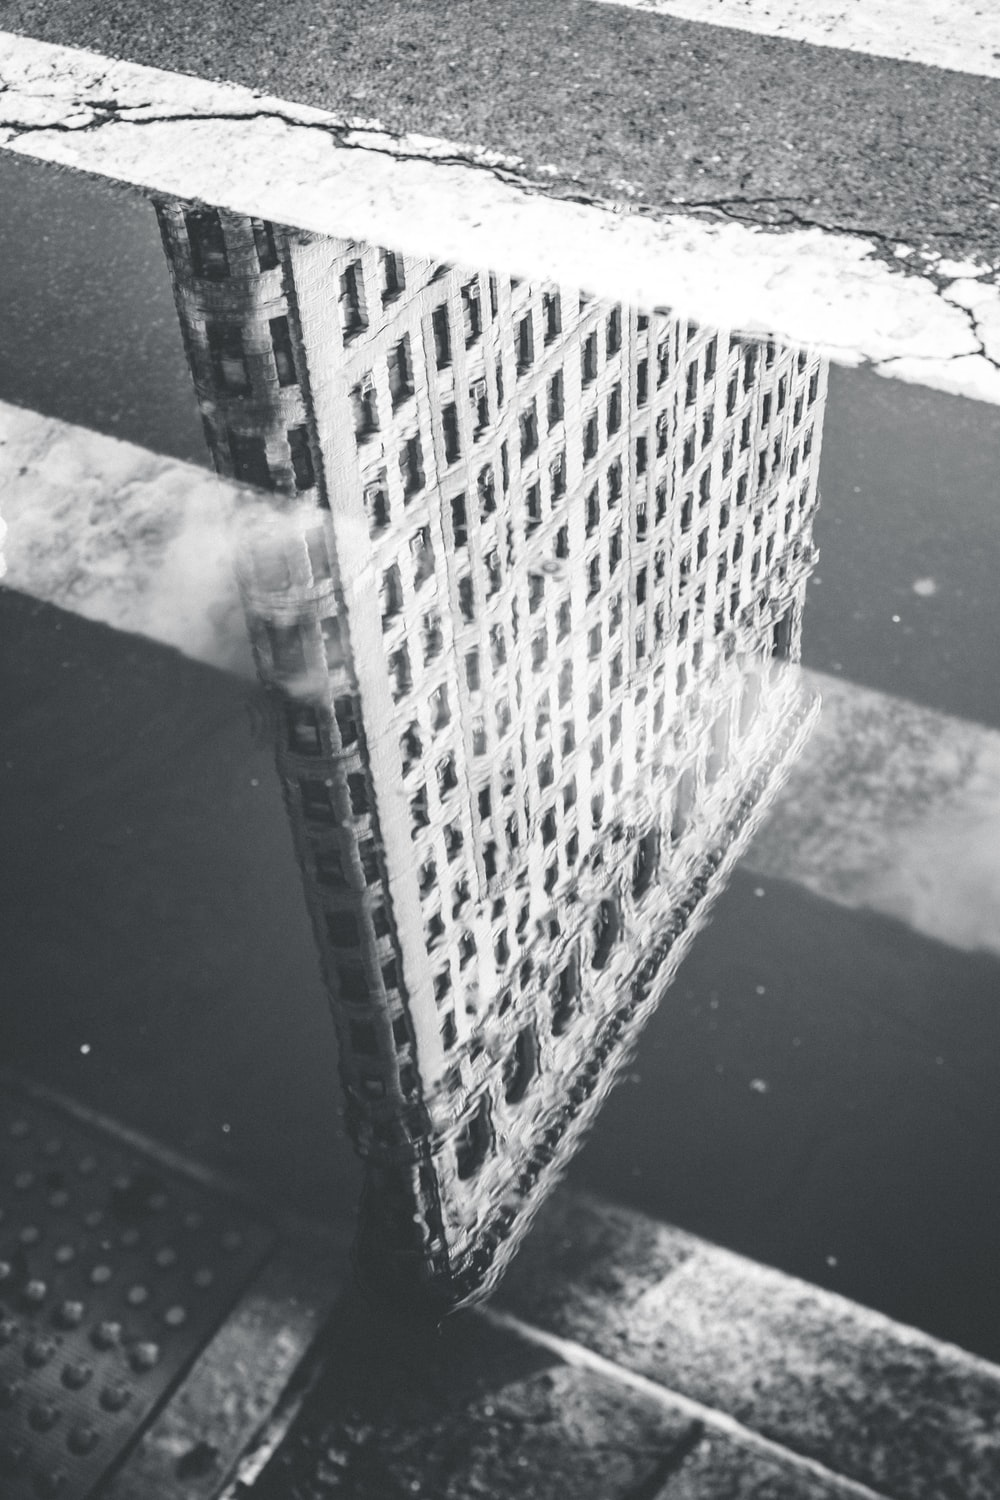 grayscale photography of reflection of building on body of water